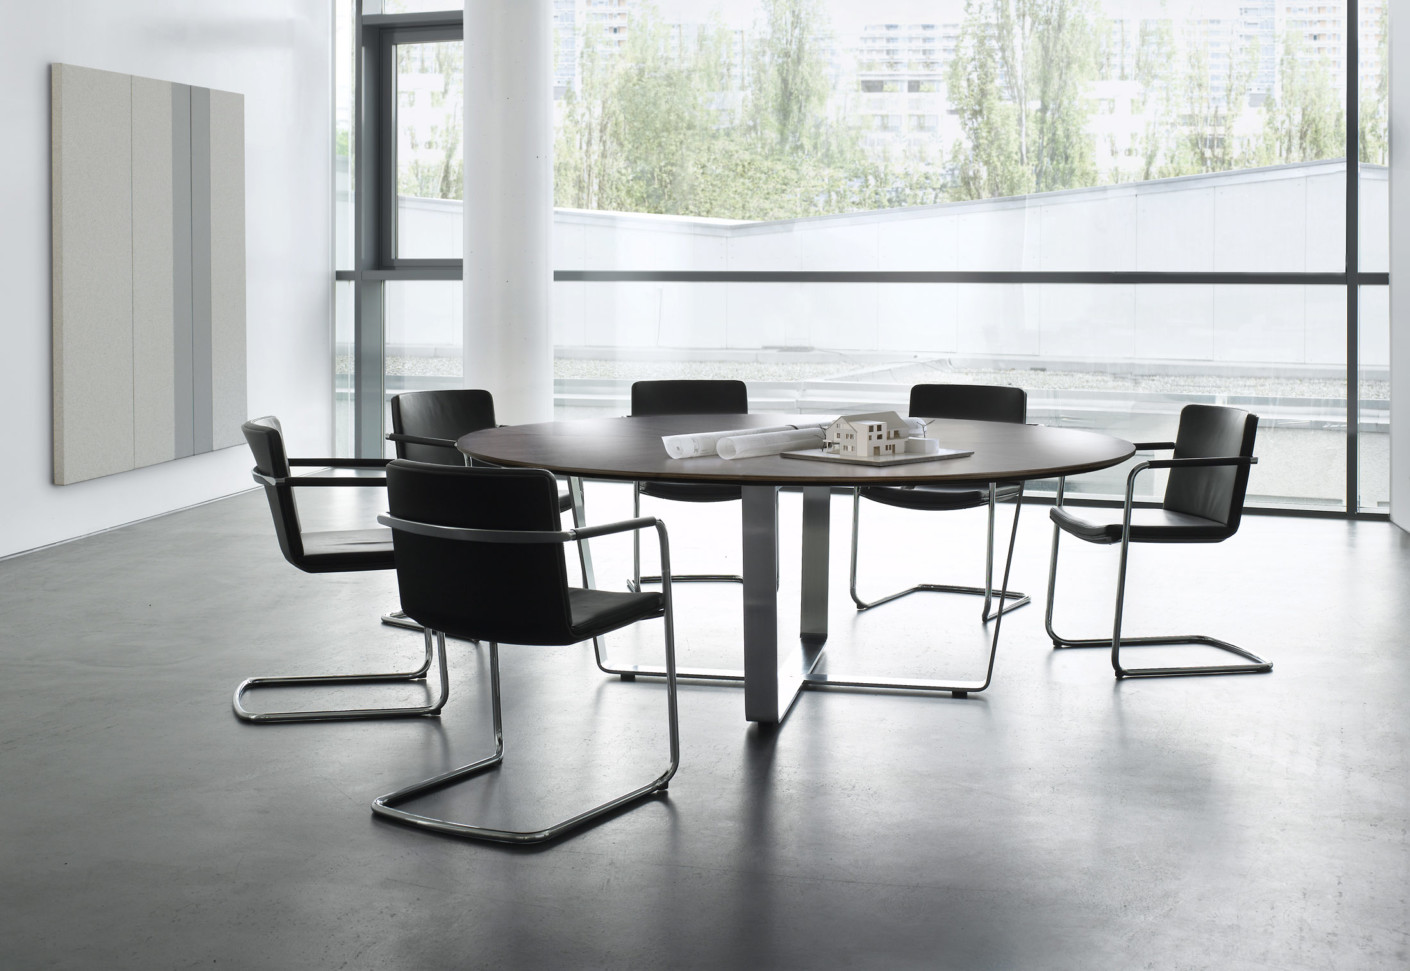 Tune conference table round by Renz  STYLEPARK